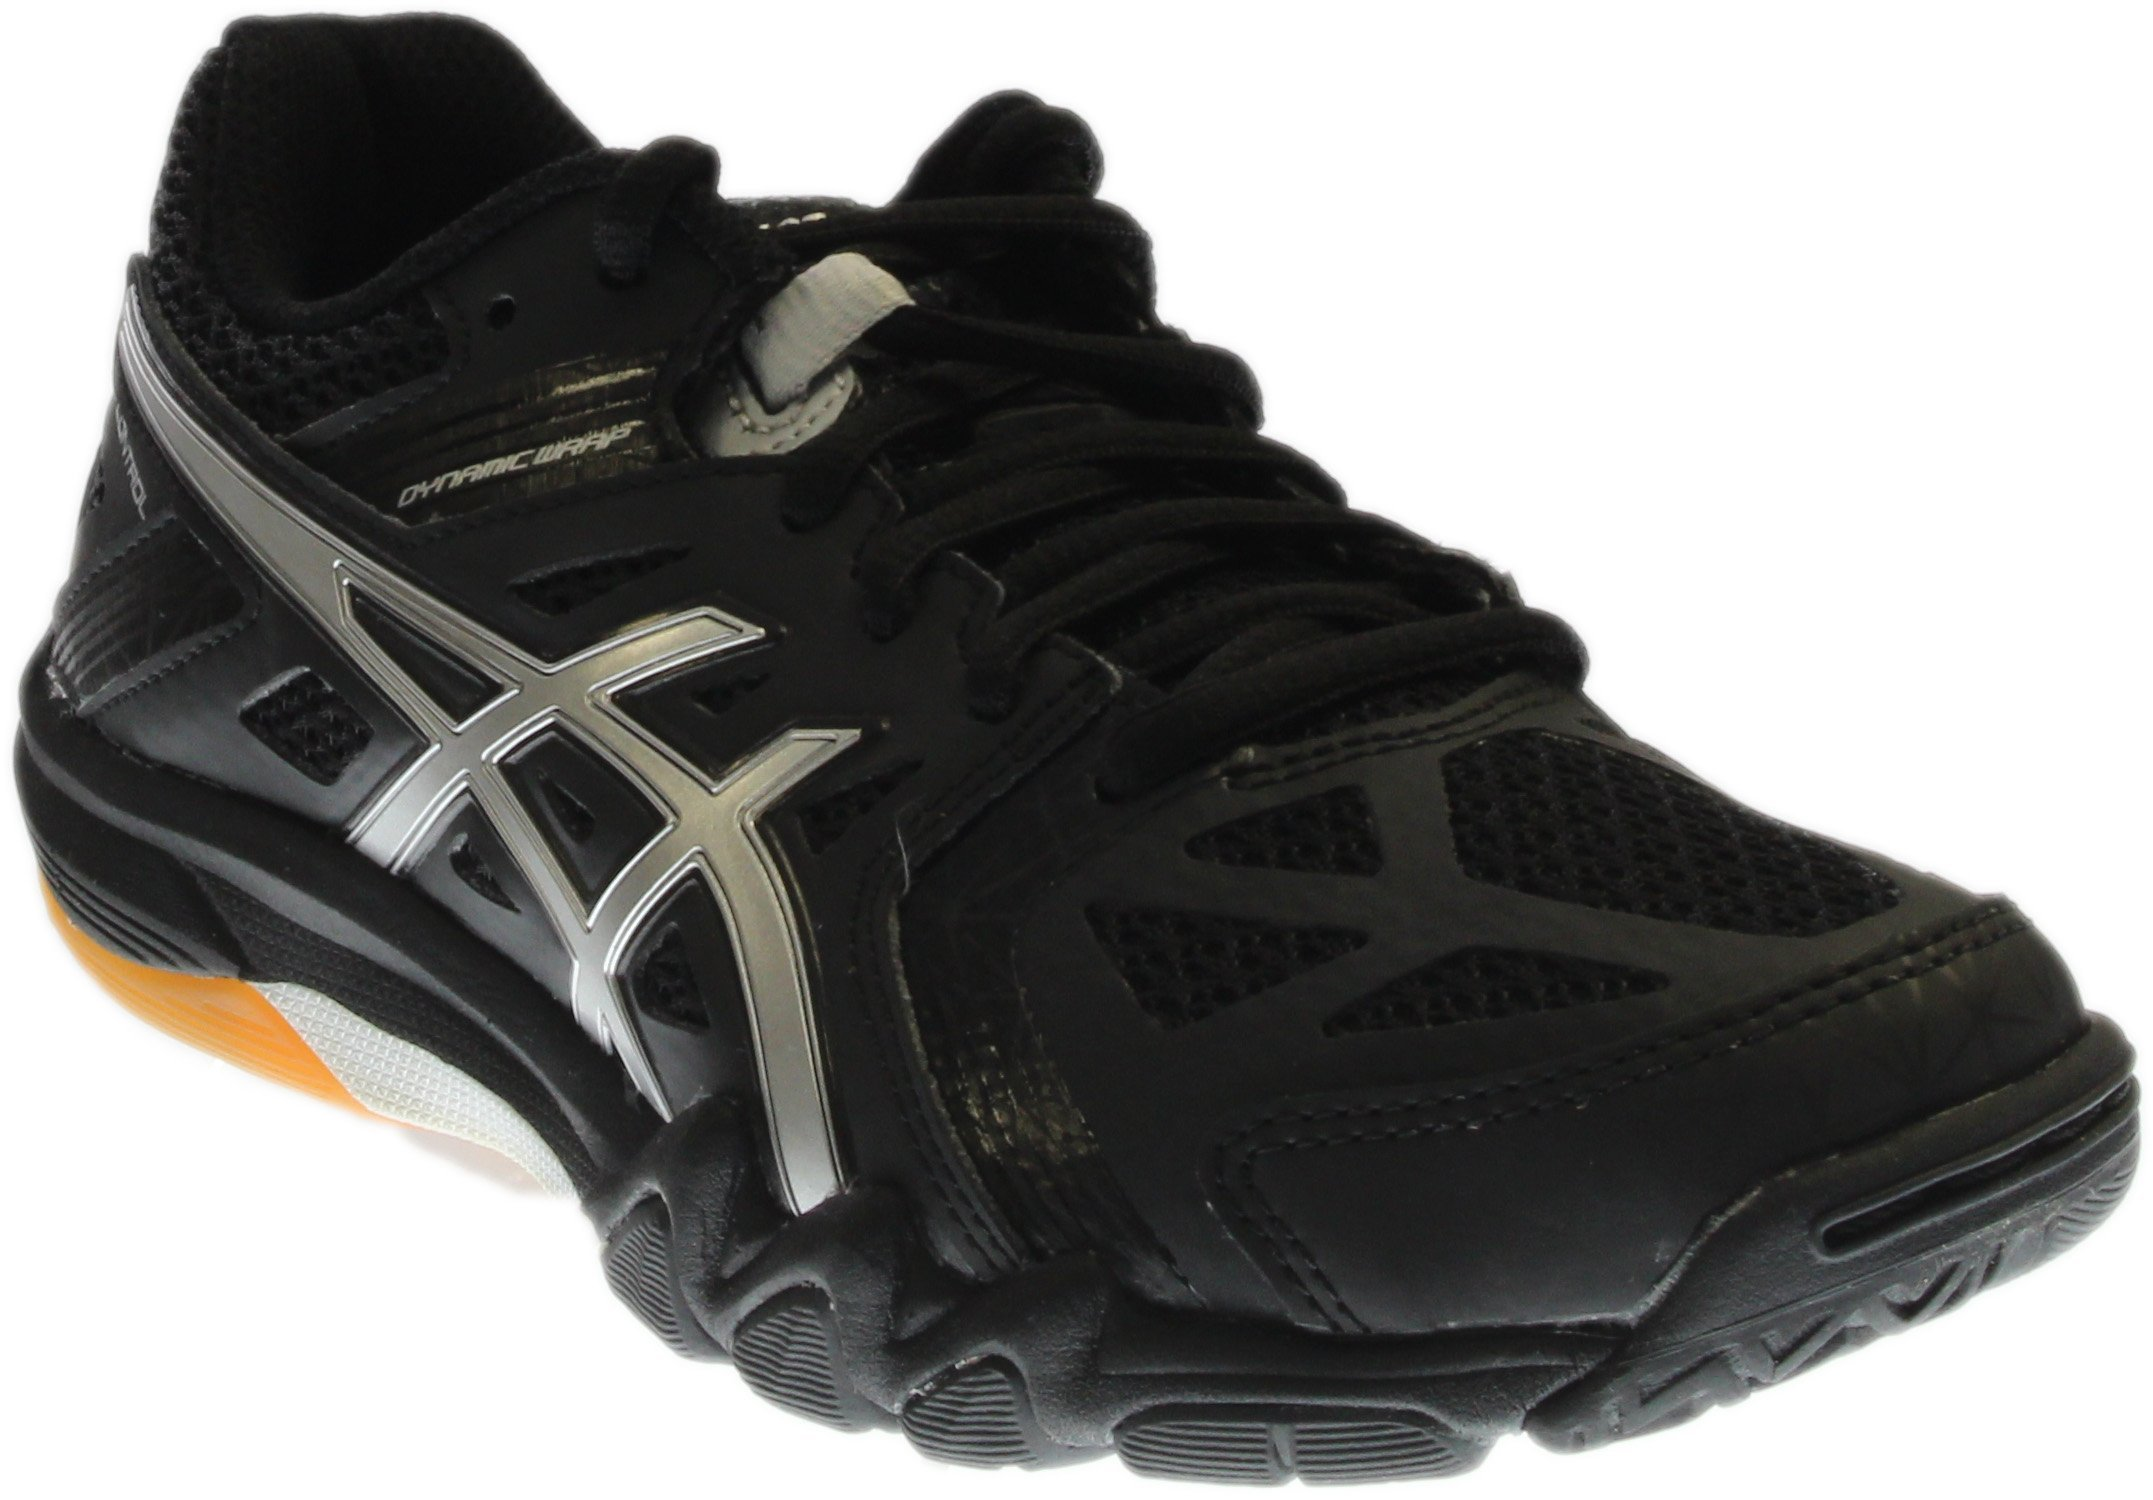 ASICS Women's Gel Court Control Volleyball Shoe, Black/Silver, 7.5 M US